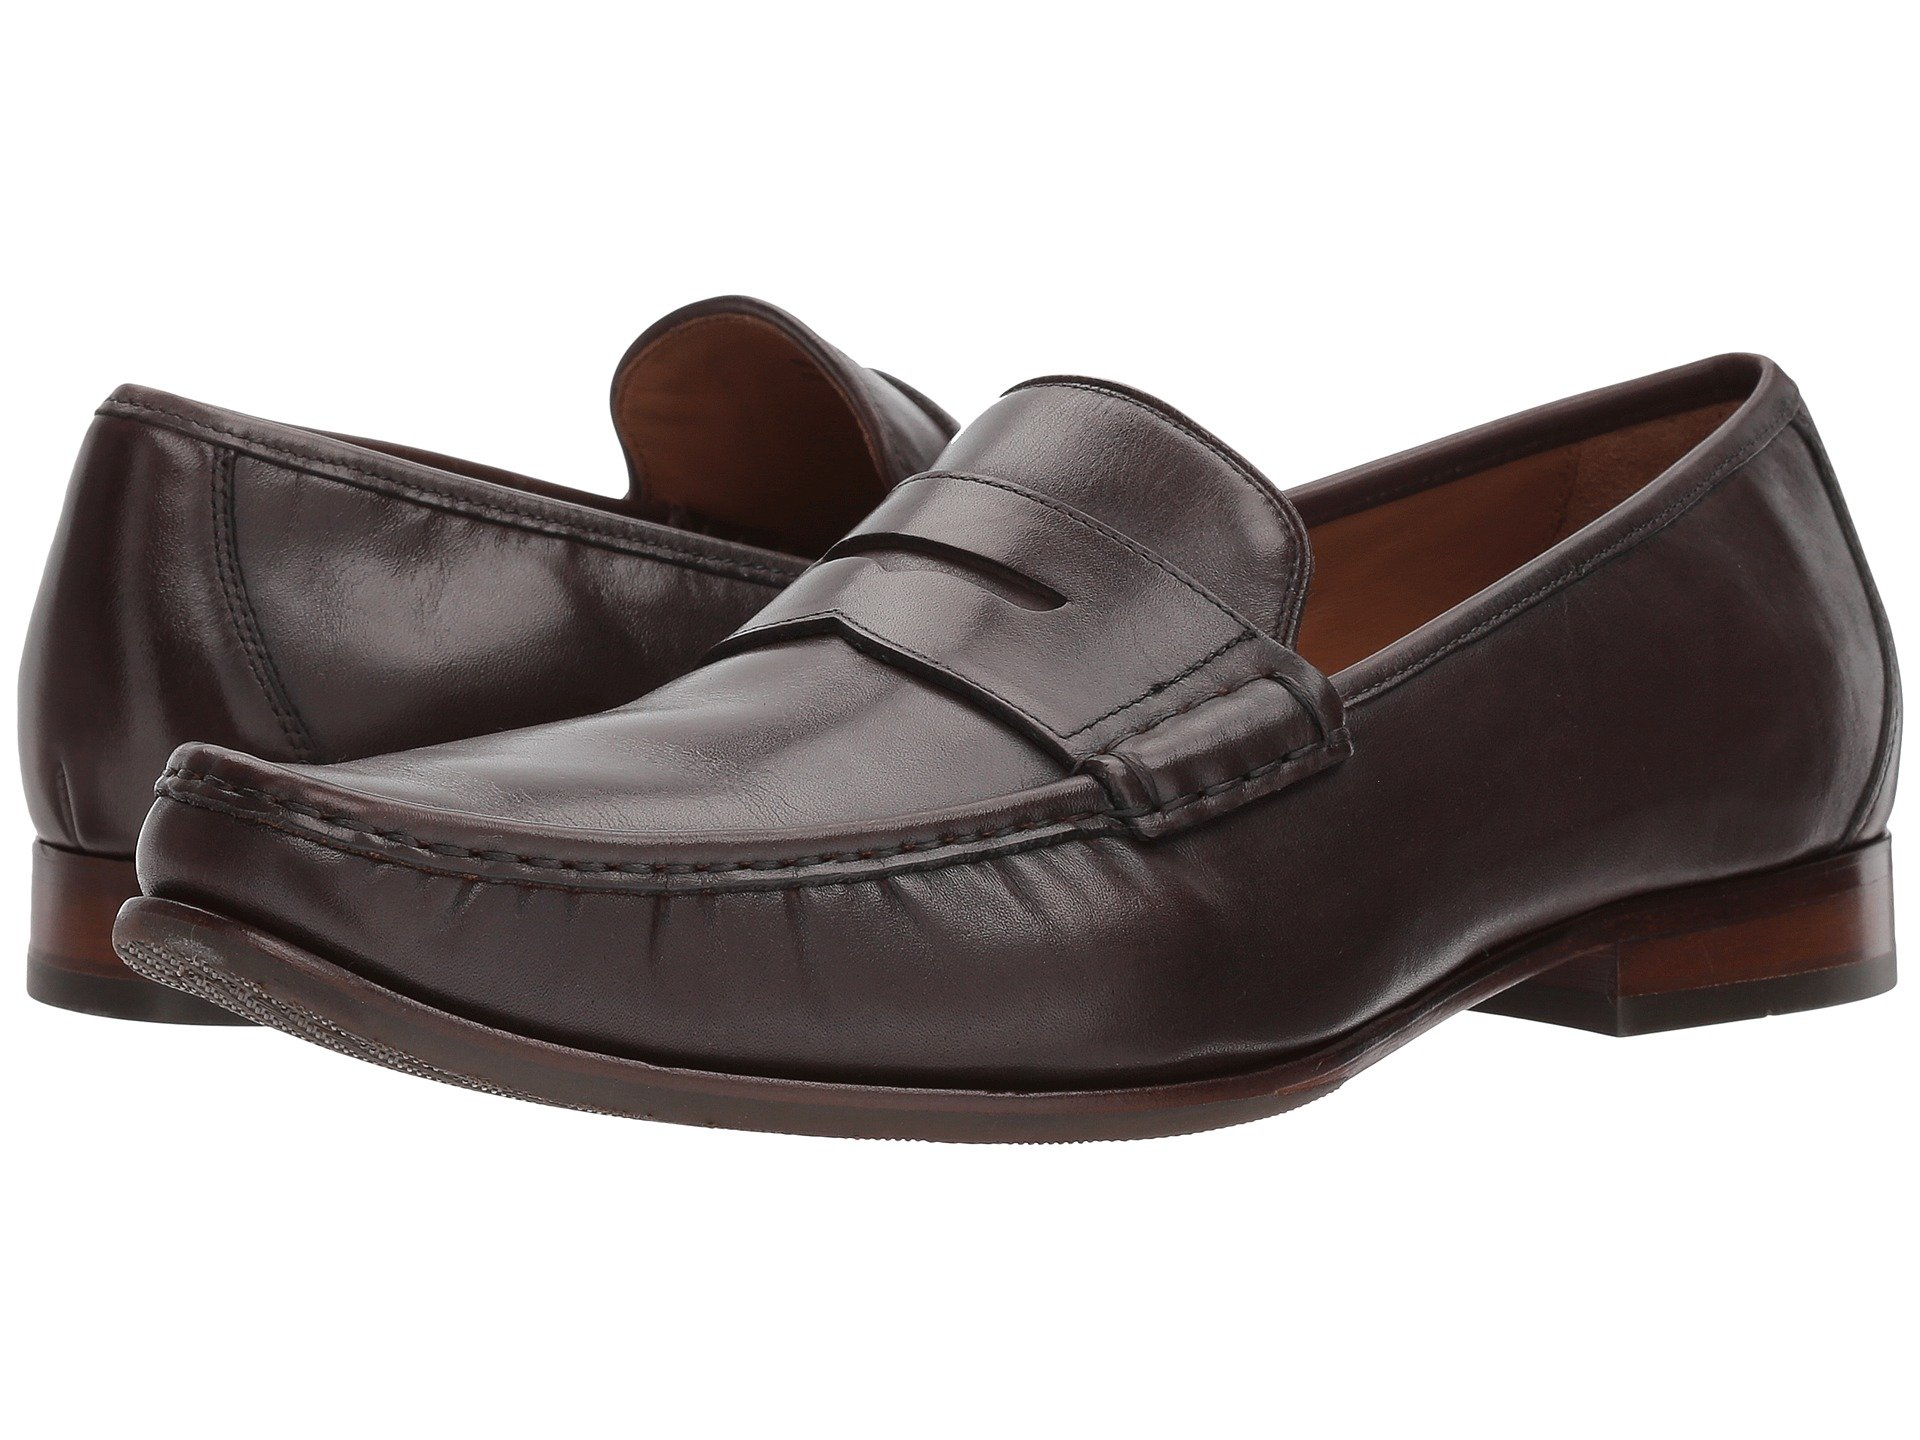 92f920ca503 COLE HAAN AIDEN GRAND PENNY